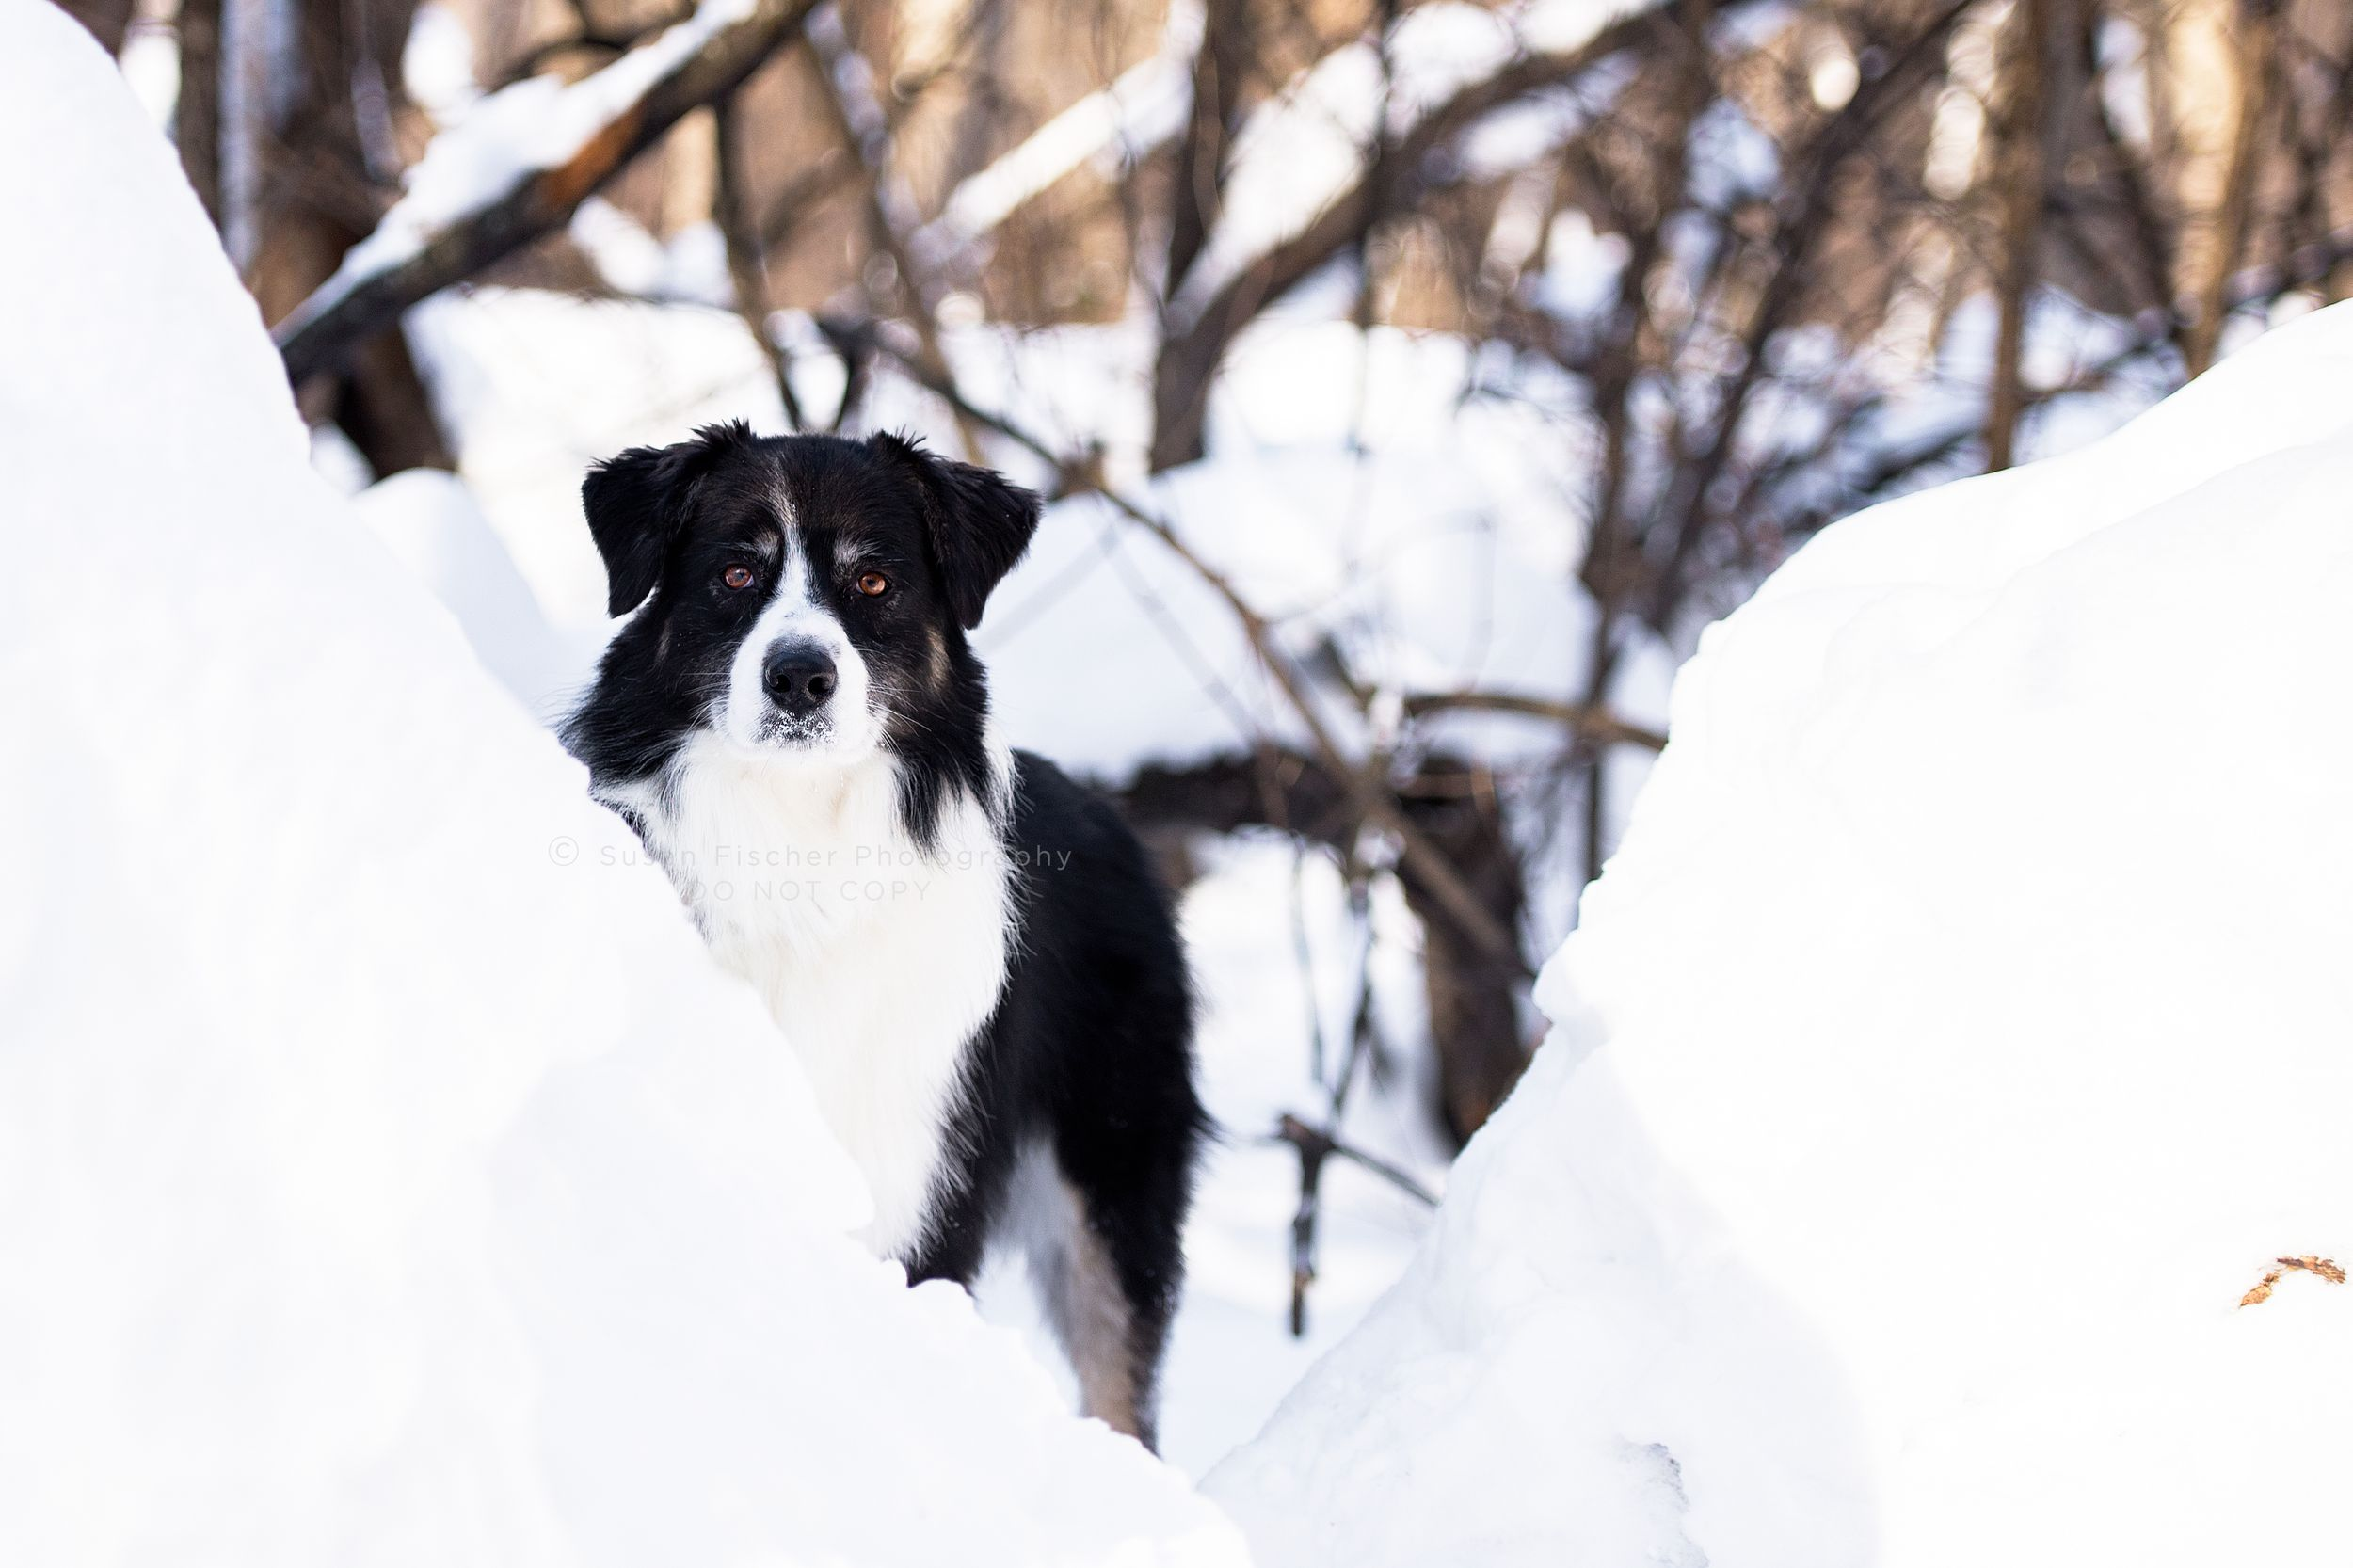 dog, dog in snow, dog in forest, Australian shepherd